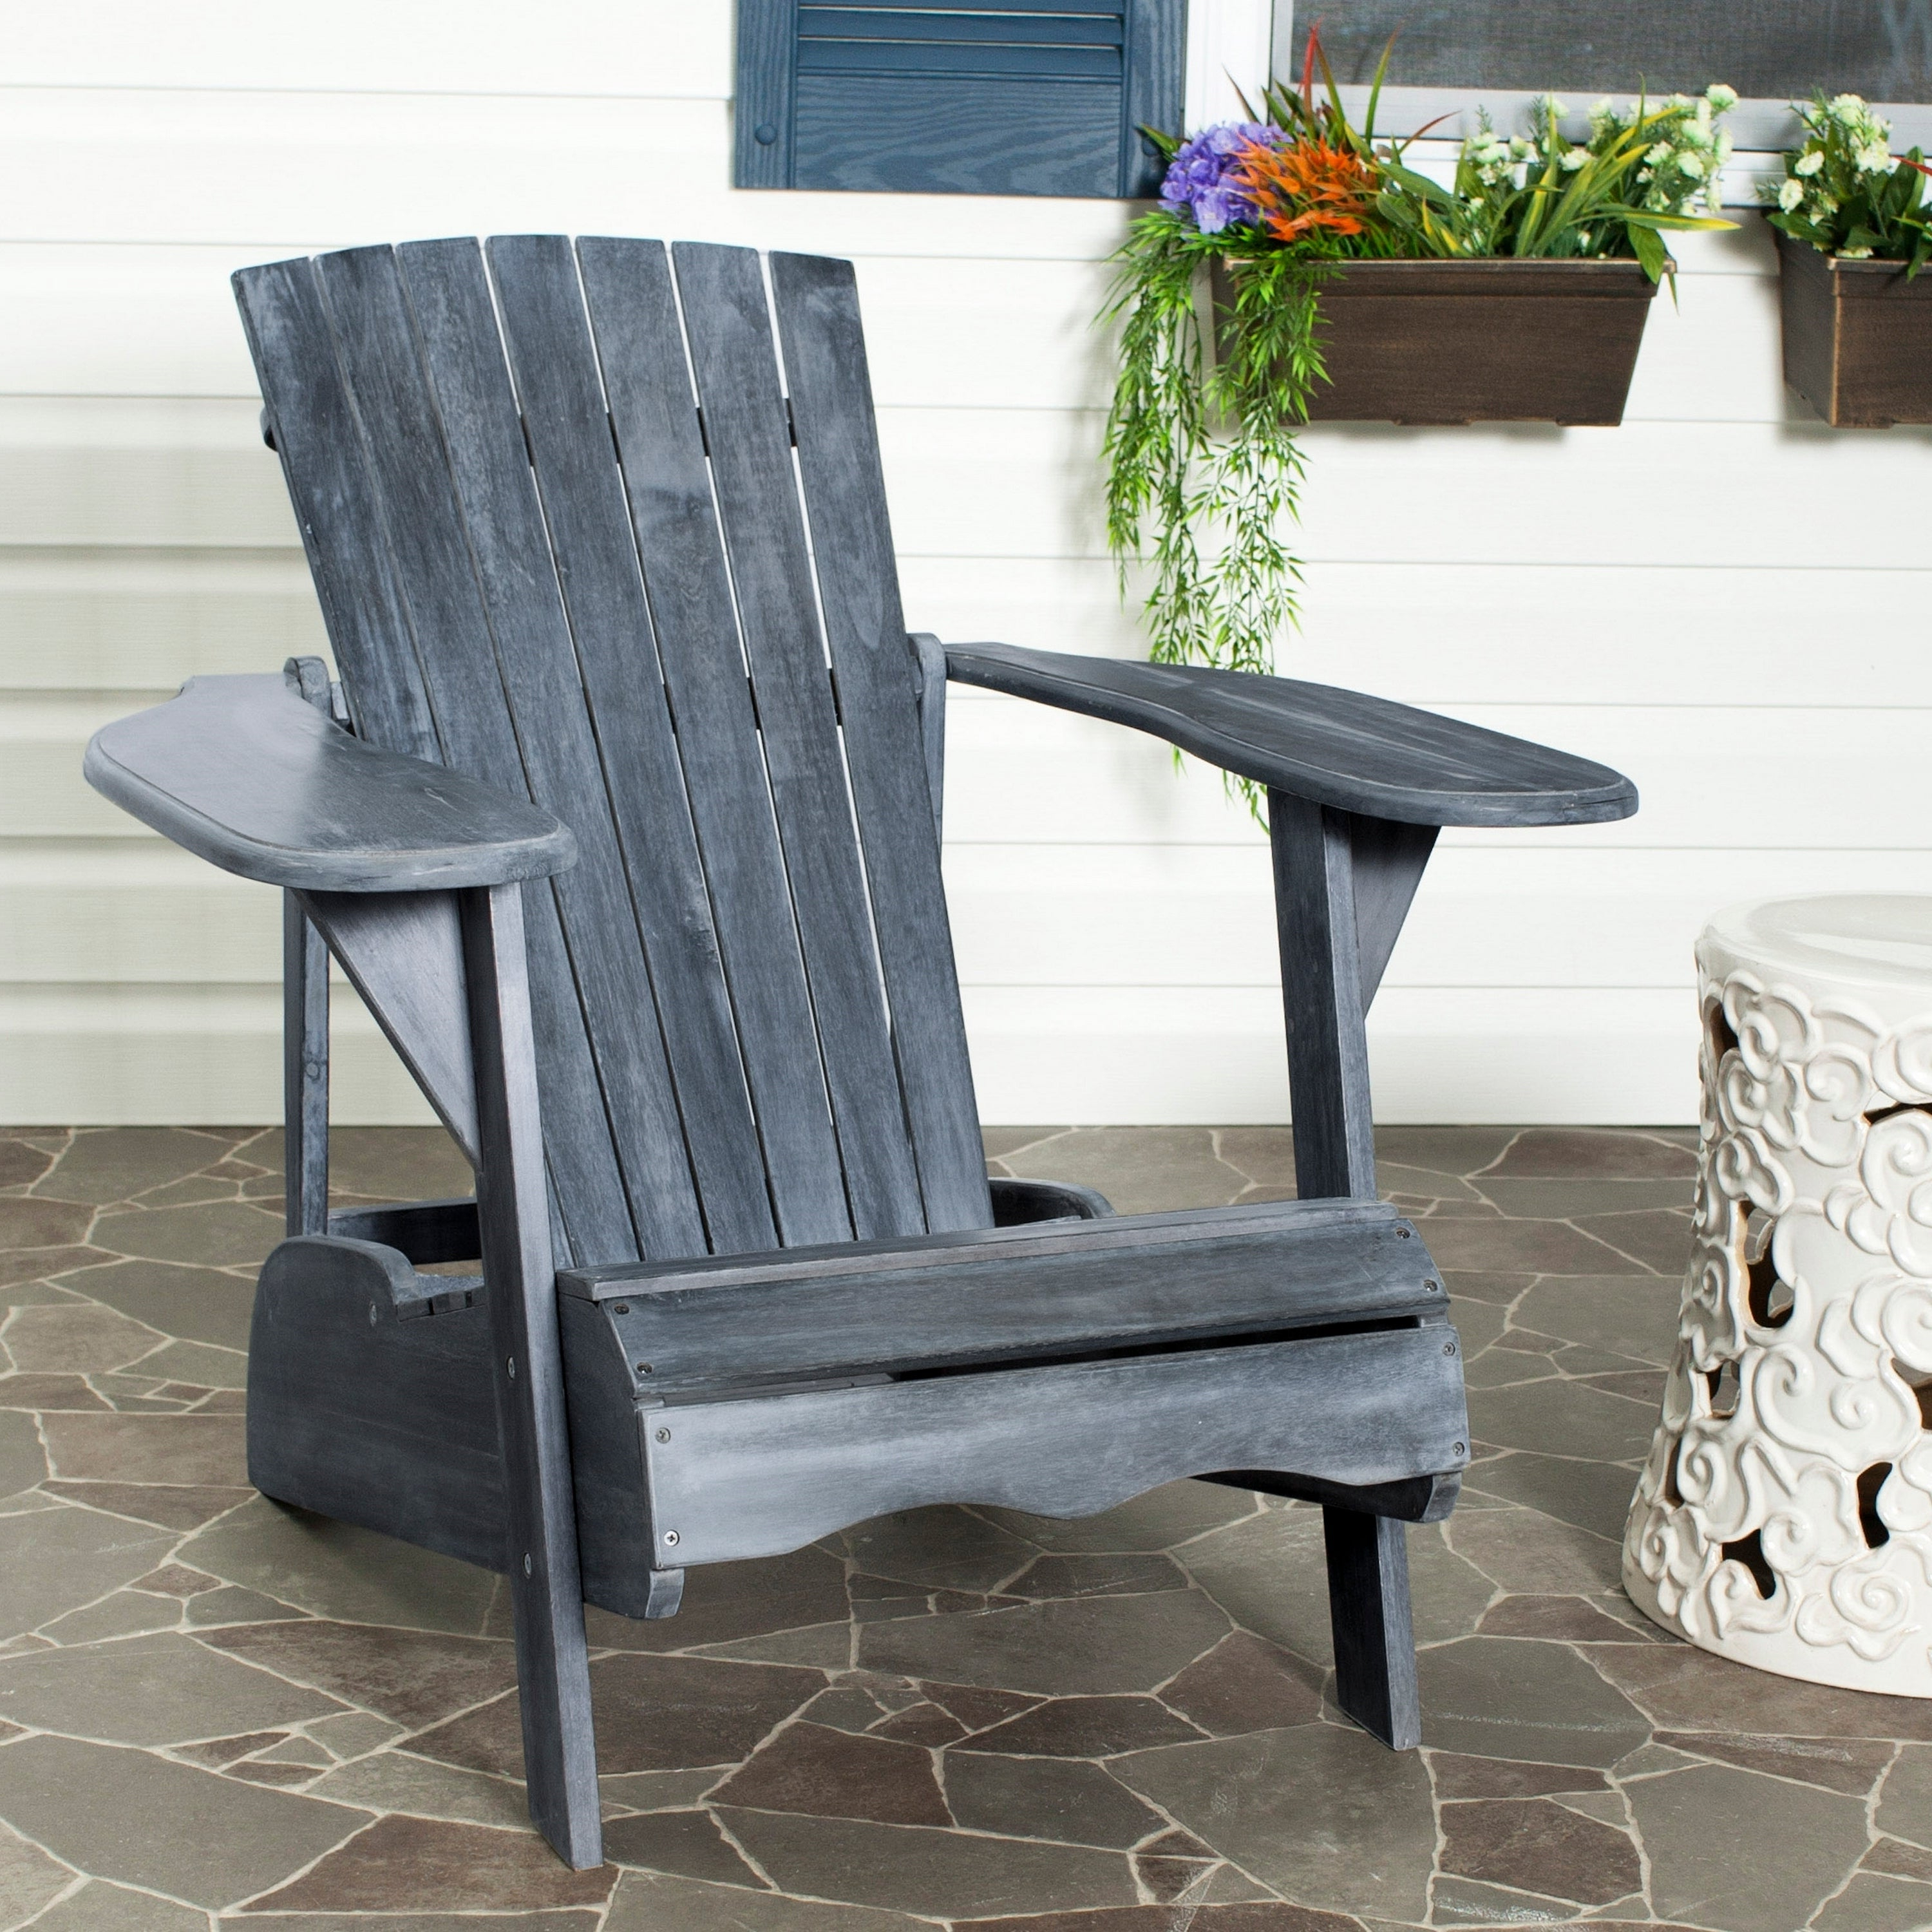 Find Great Outdoor Seating (View 13 of 25)